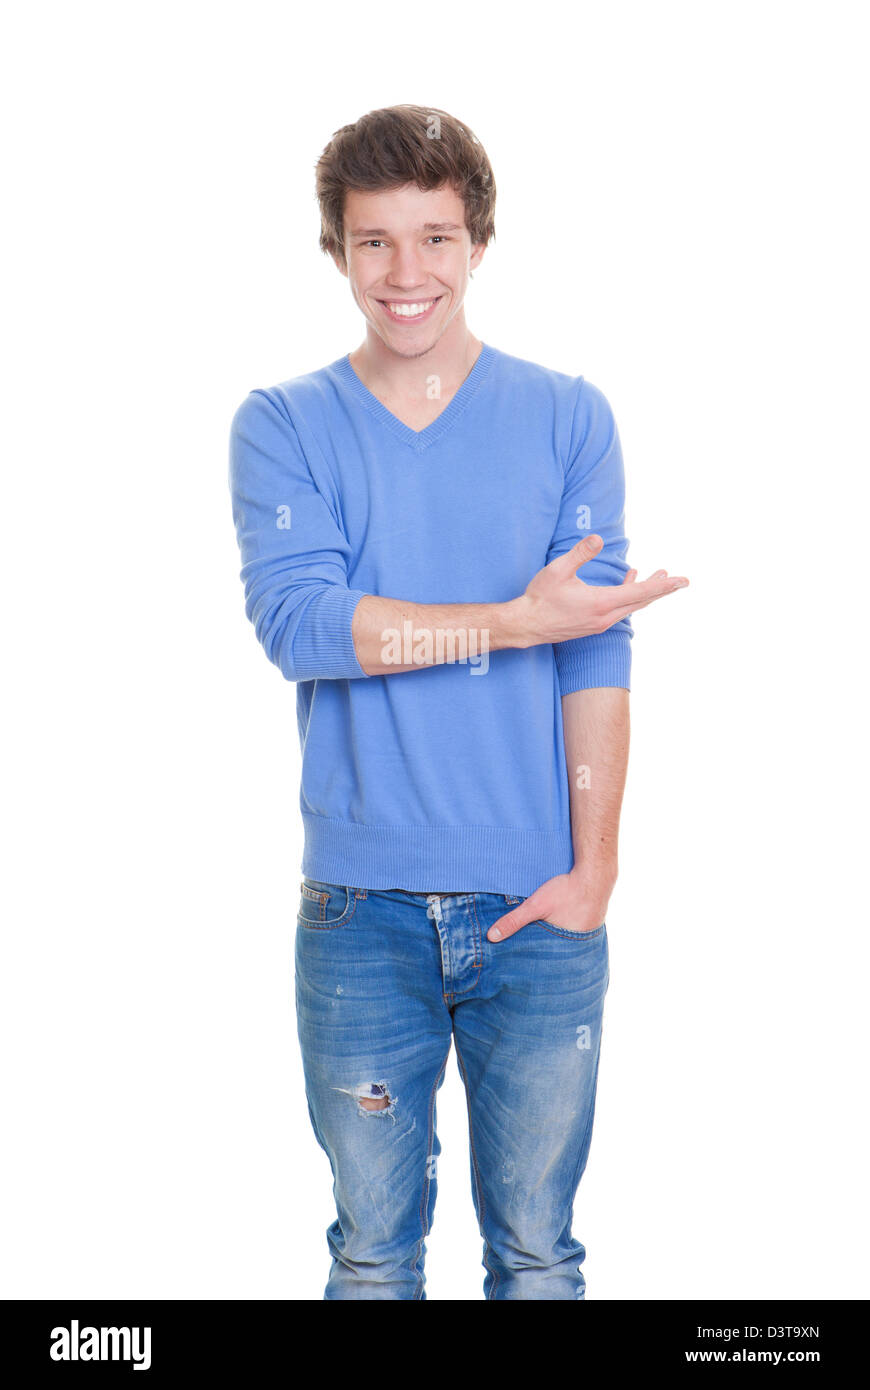 friendly student gesturing indicating or showing - Stock Image